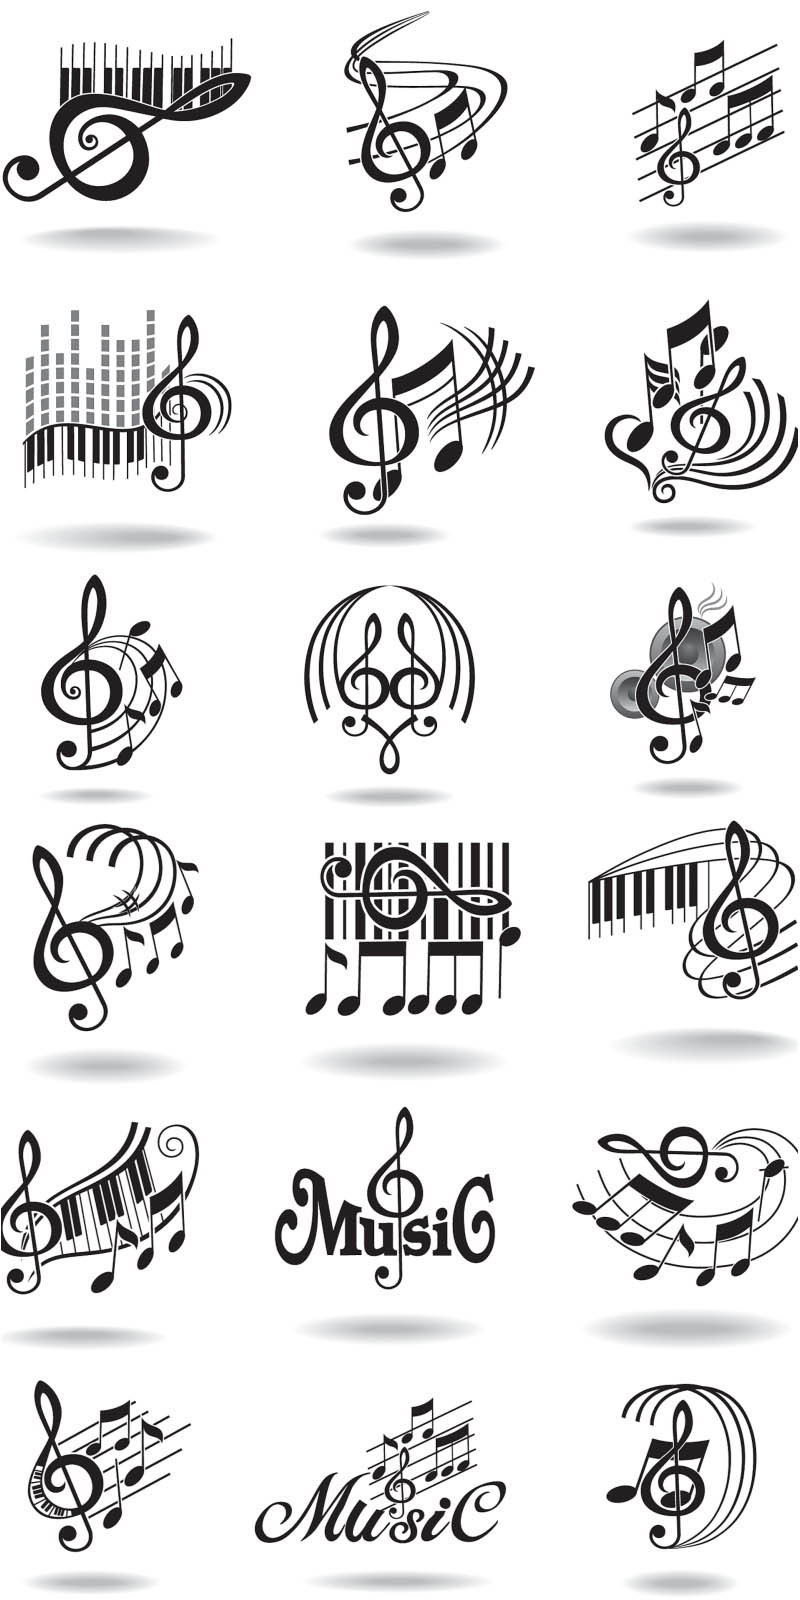 Notes music staff and treble clef vector vector graphics vector illustrations original